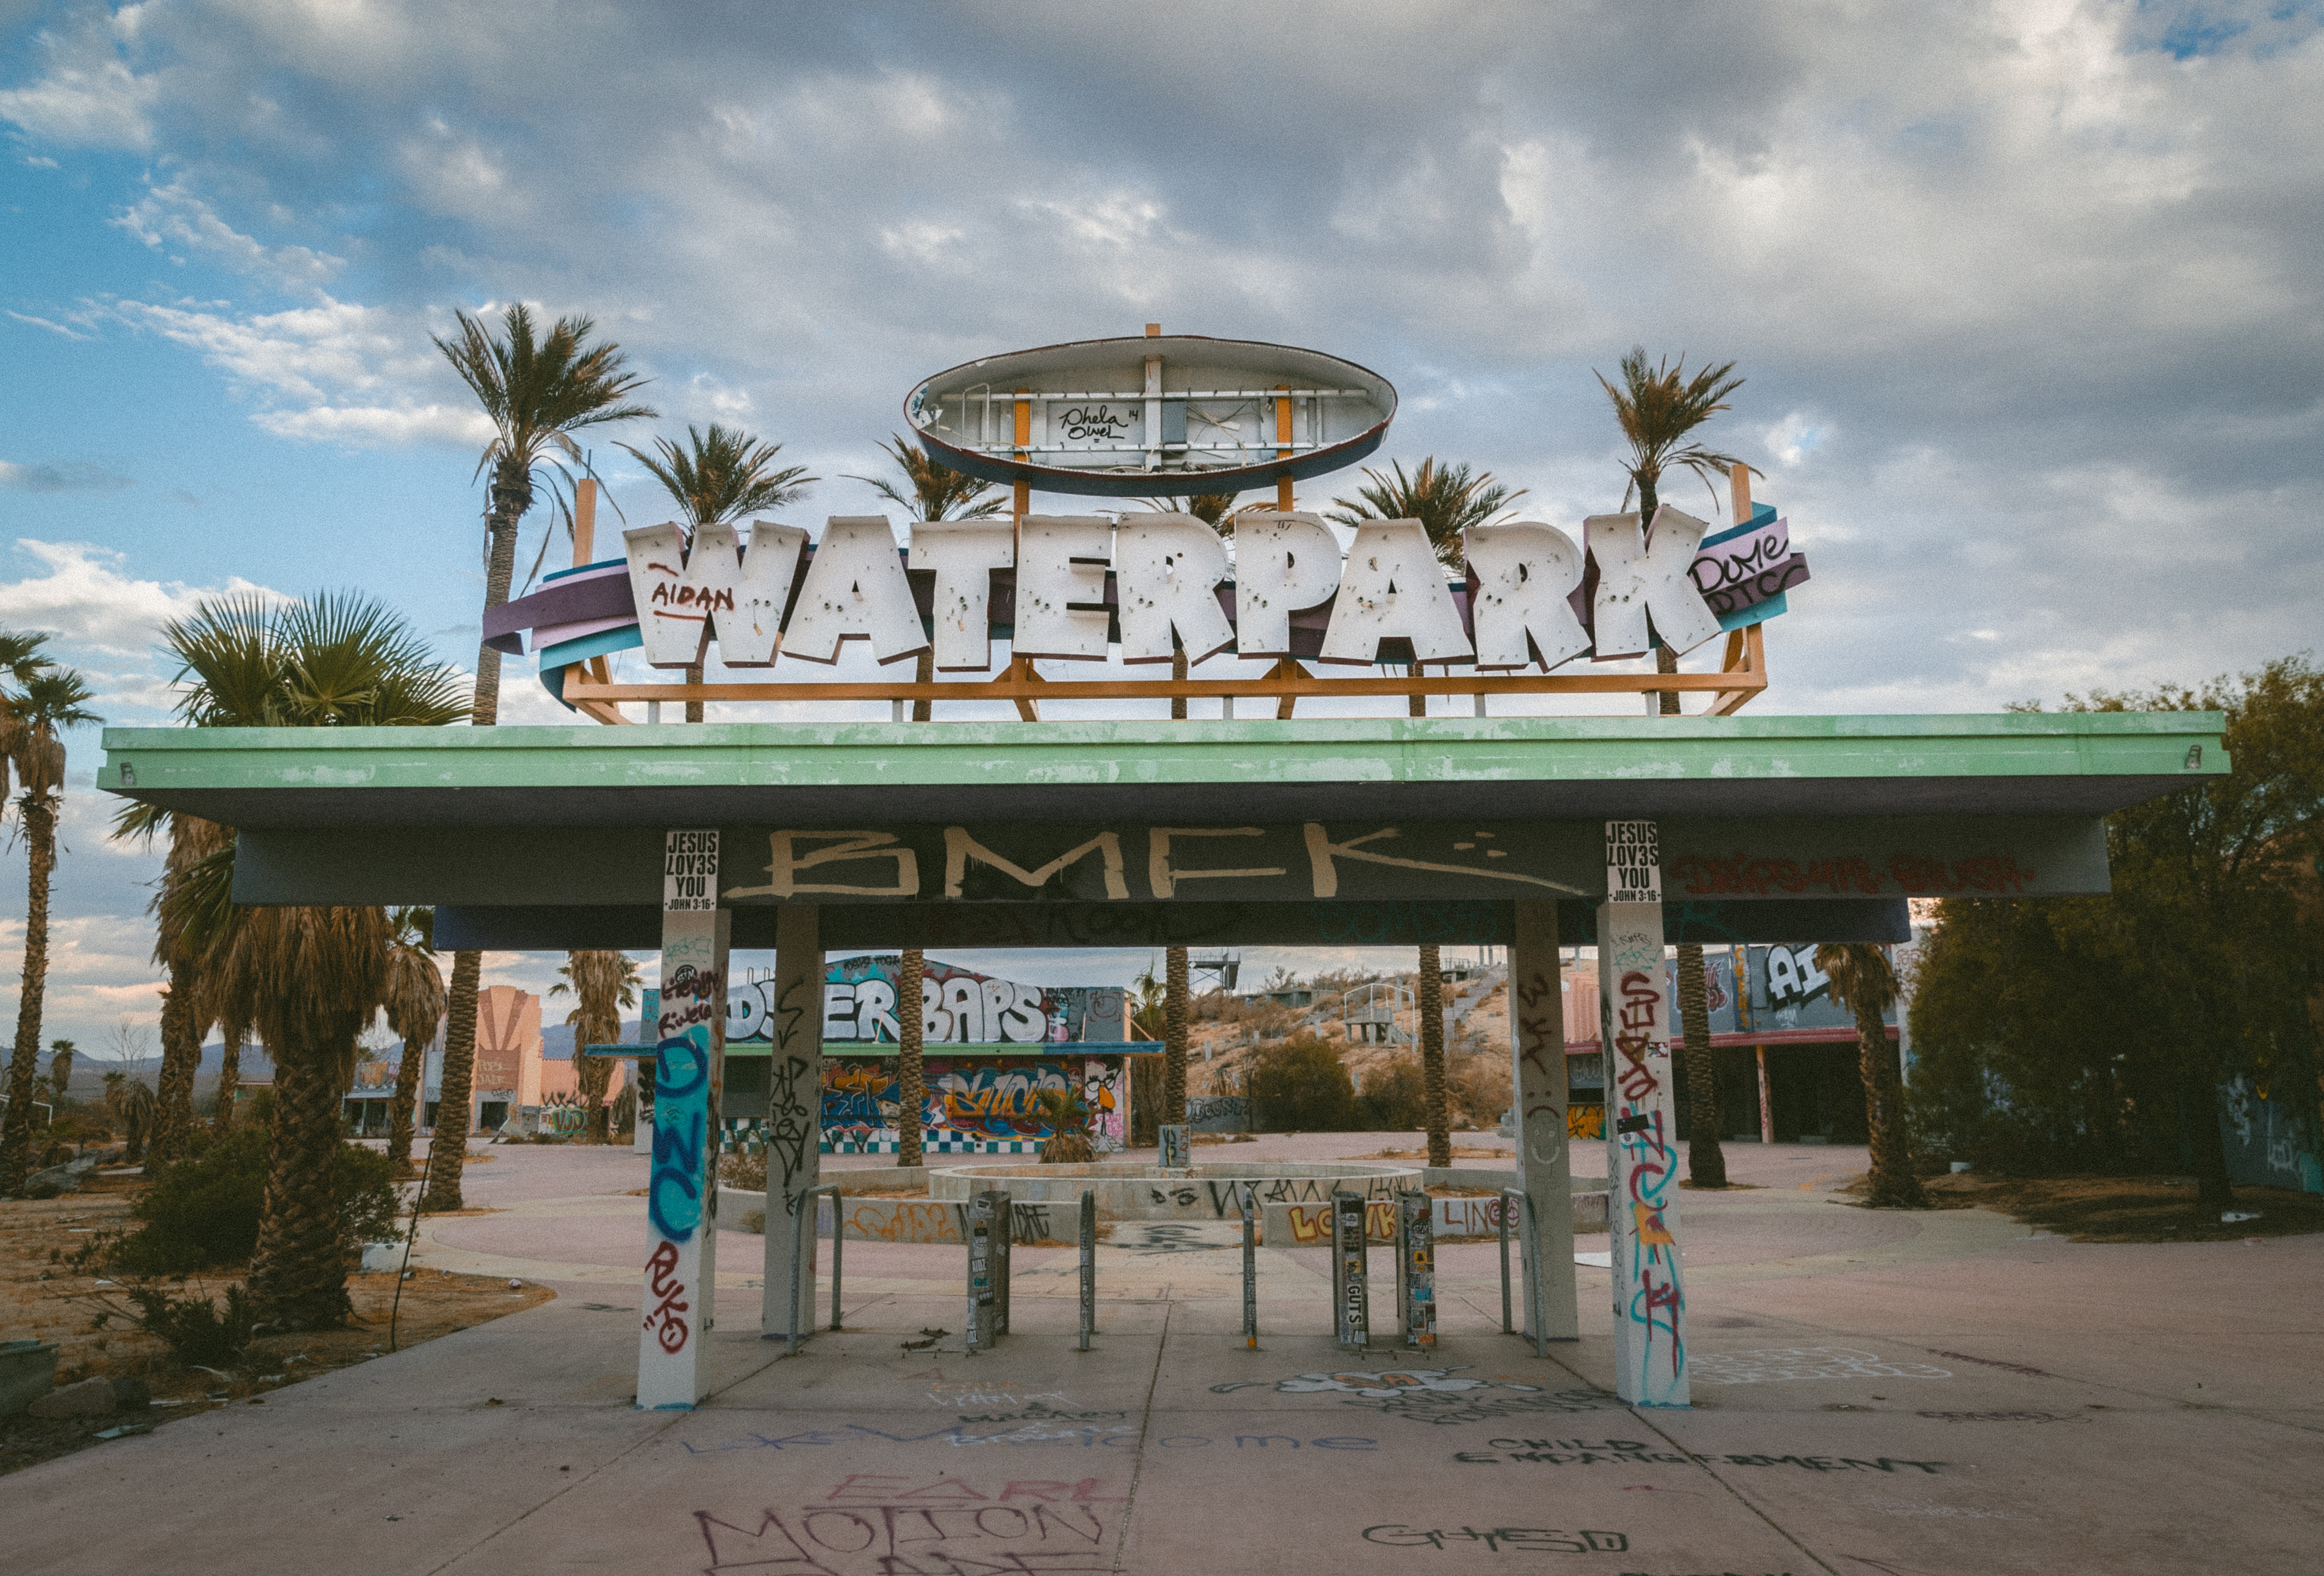 Waterpark signage